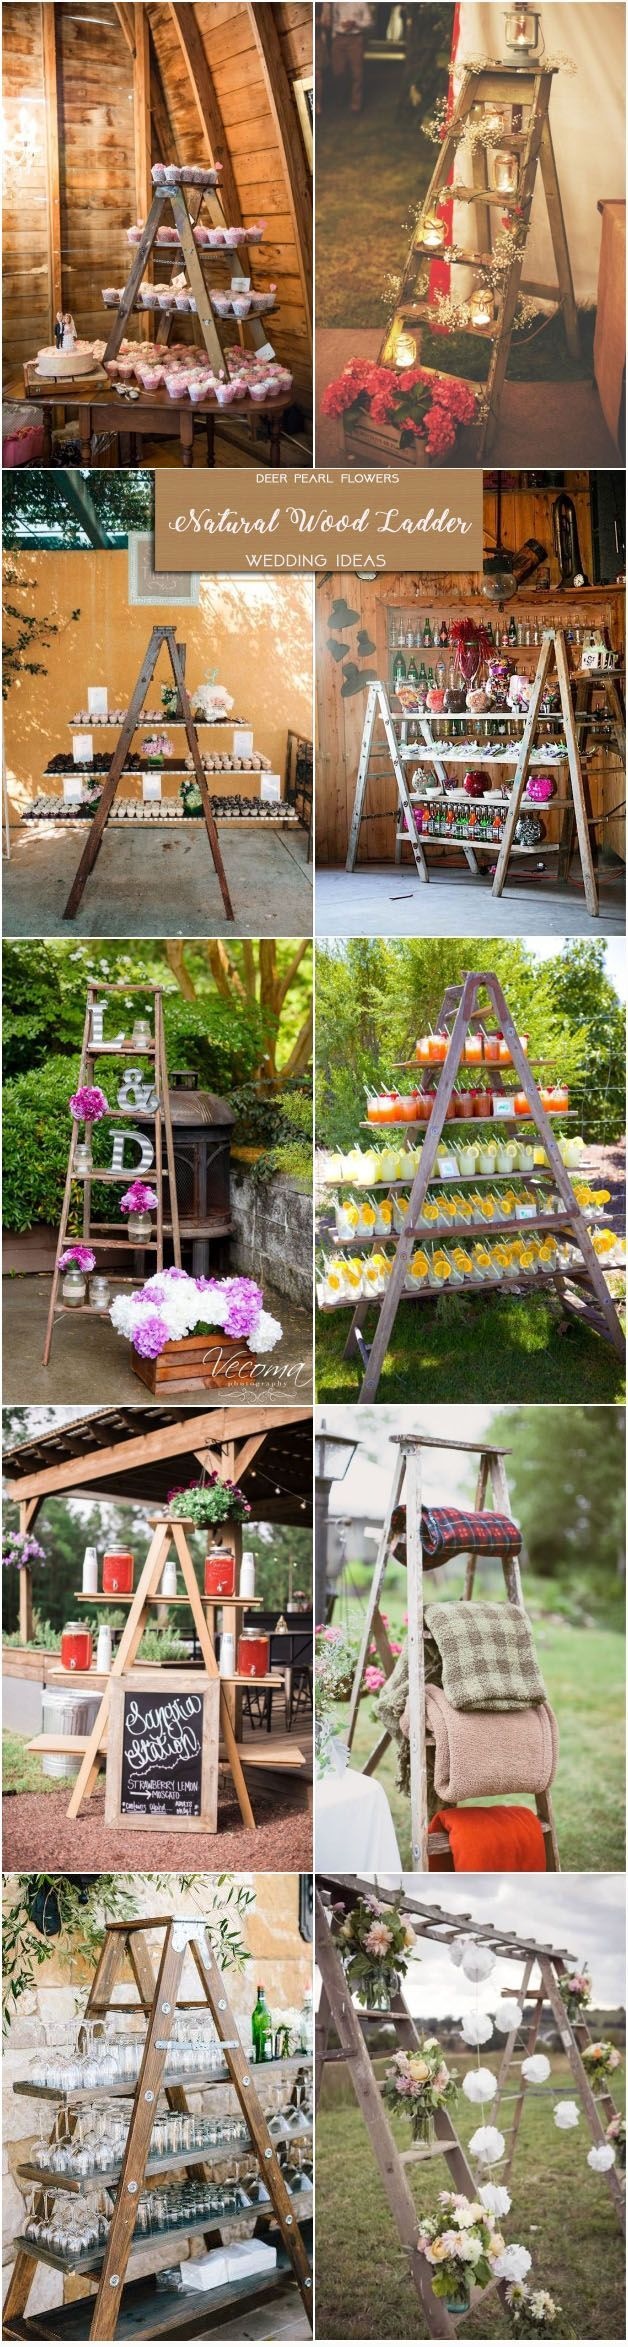 Rustic wedding ideas- natural wood ladder wedding decor ideas / http://www.deerpearlflowers.com/rustic-wedding-themes-ideas-part-2/